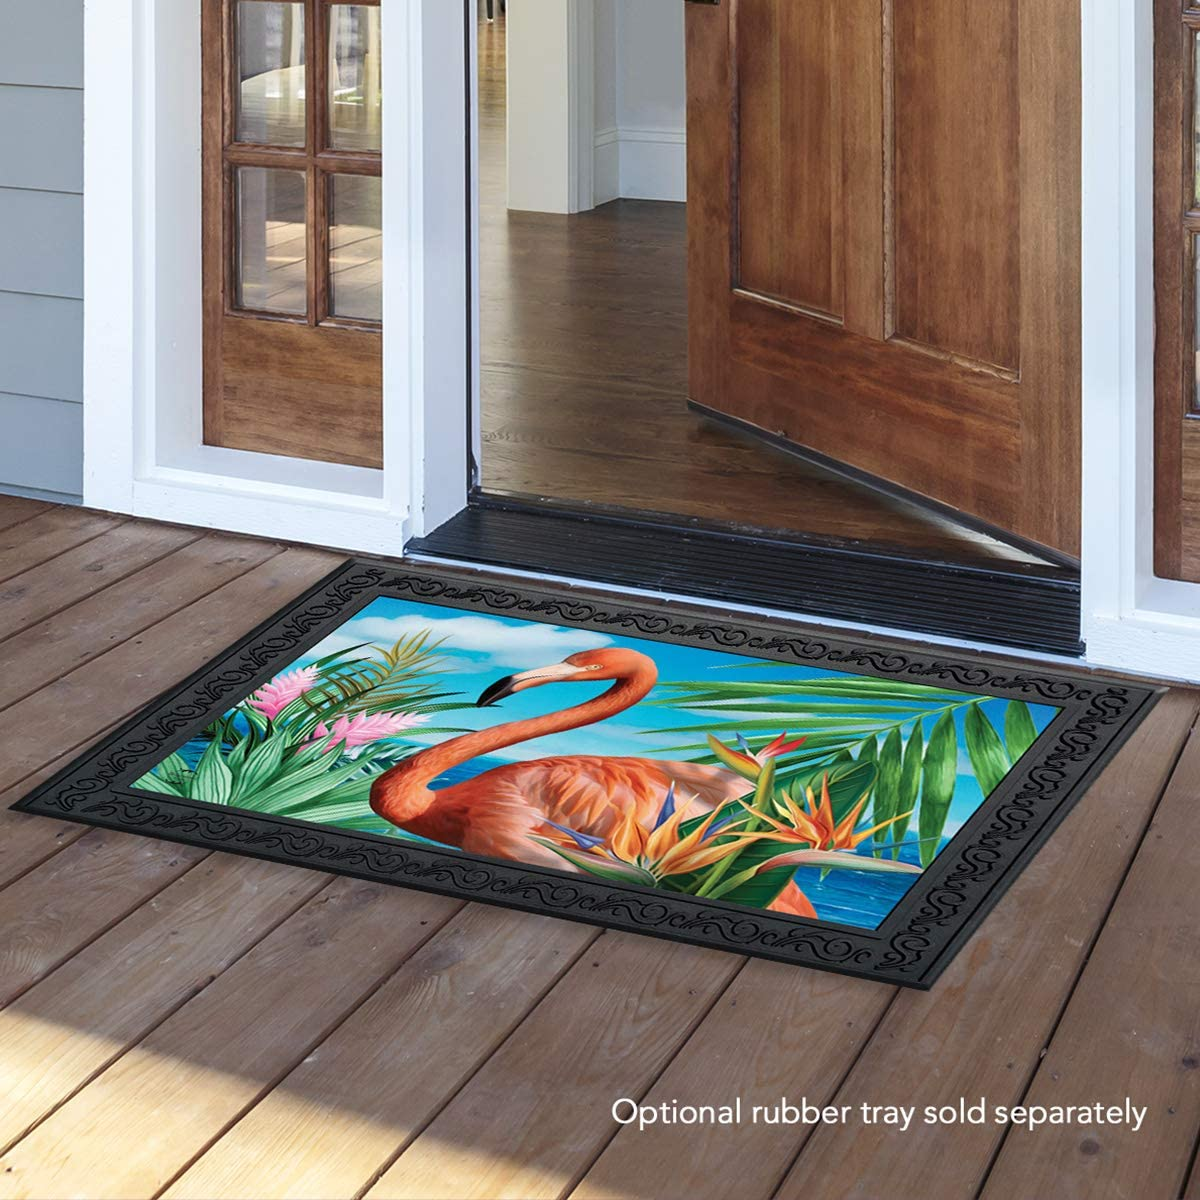 Briarwood Lane Flamingo Paradise Summer Doormat Nautical Indoor Outdoor 18 x 30